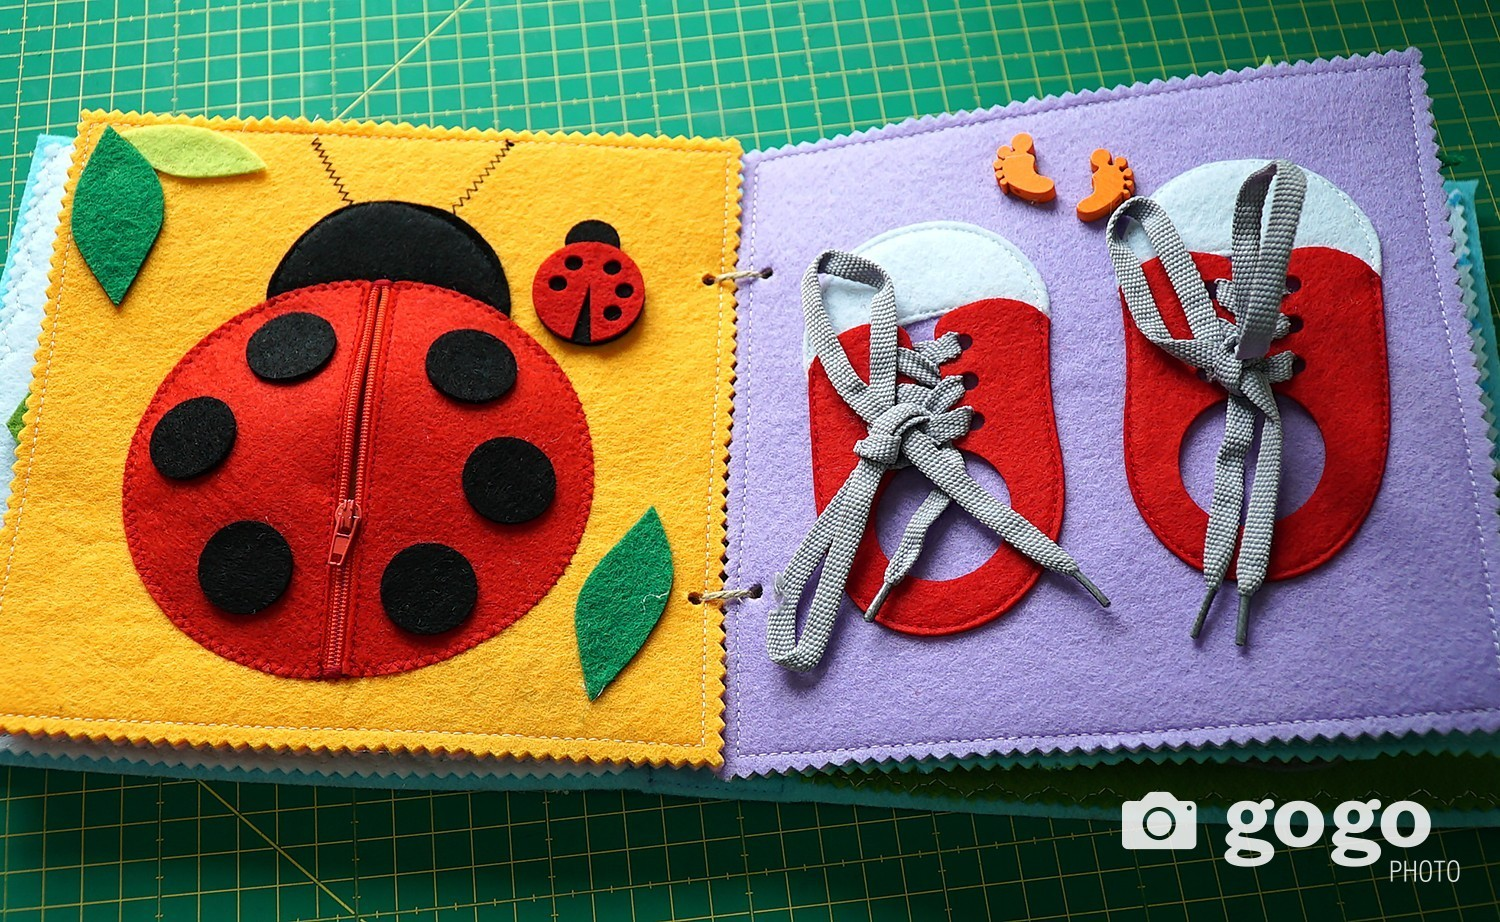 These ladybugs in a small pocket with zipper help children become more responsible for their possessions. There are six ladybugs and each has a dot representing its number. A child is supposed to learn counting, put them in order, and keep all in the pocket after. Zipper should help a child not to lose the ladybugs says Mungunsar.